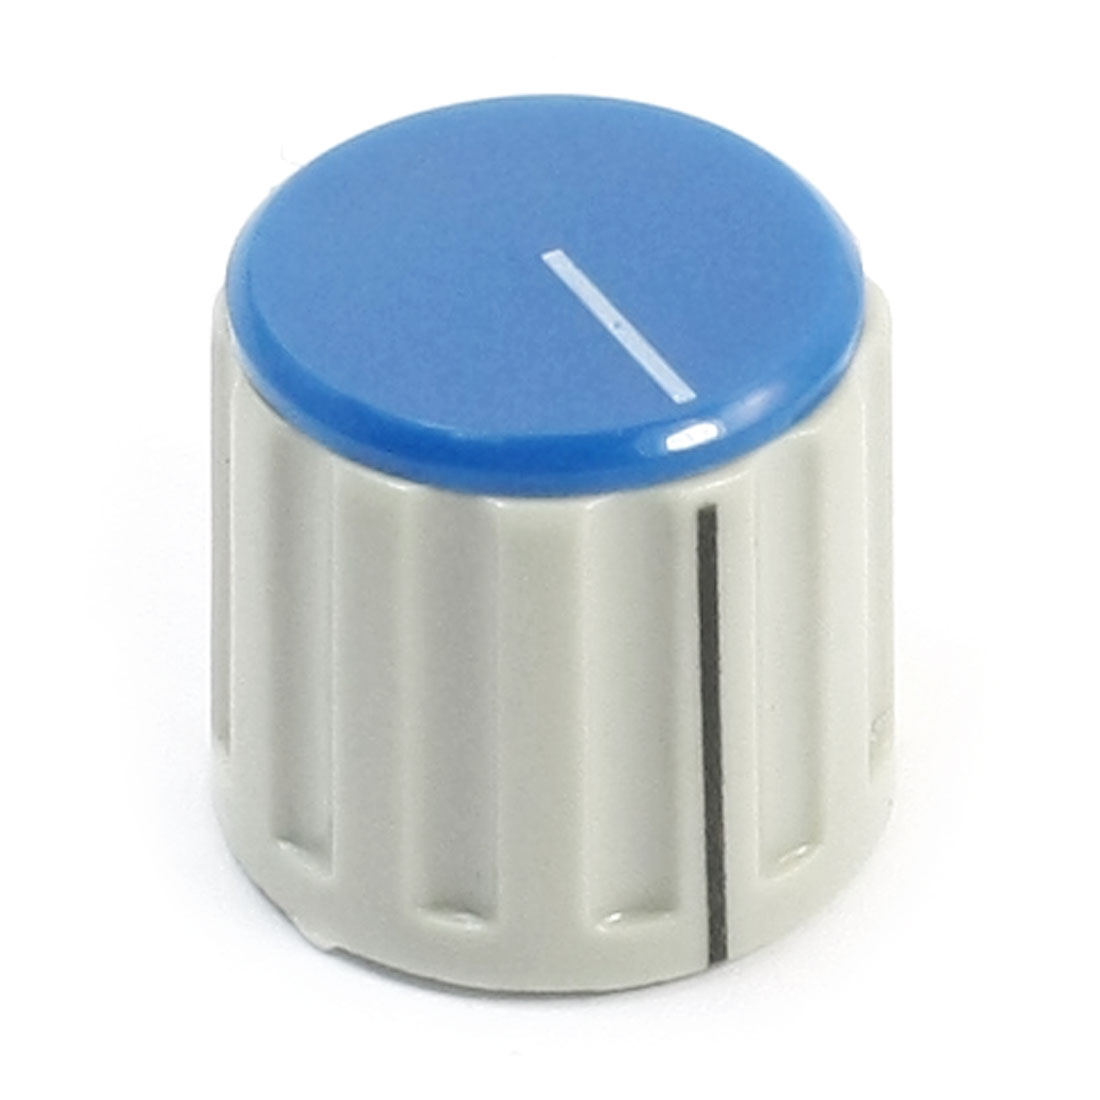 Ribbed Grip 6mm Split Shaft Blue Cap Volume Knob KN115 for Potentiometer Pot